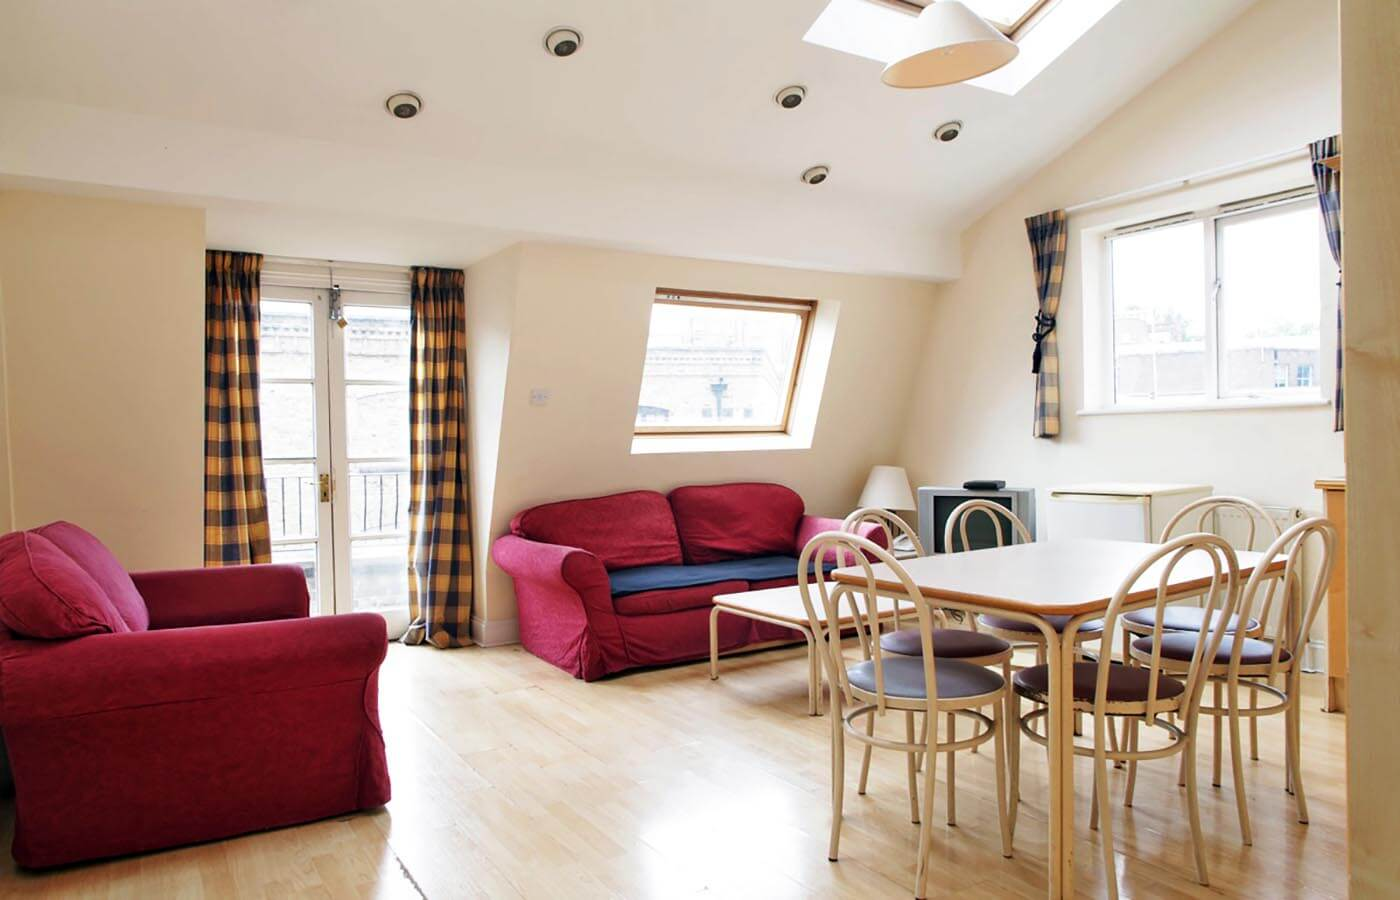 Cheap U0026 Cheerful Self Catering Apartments In London